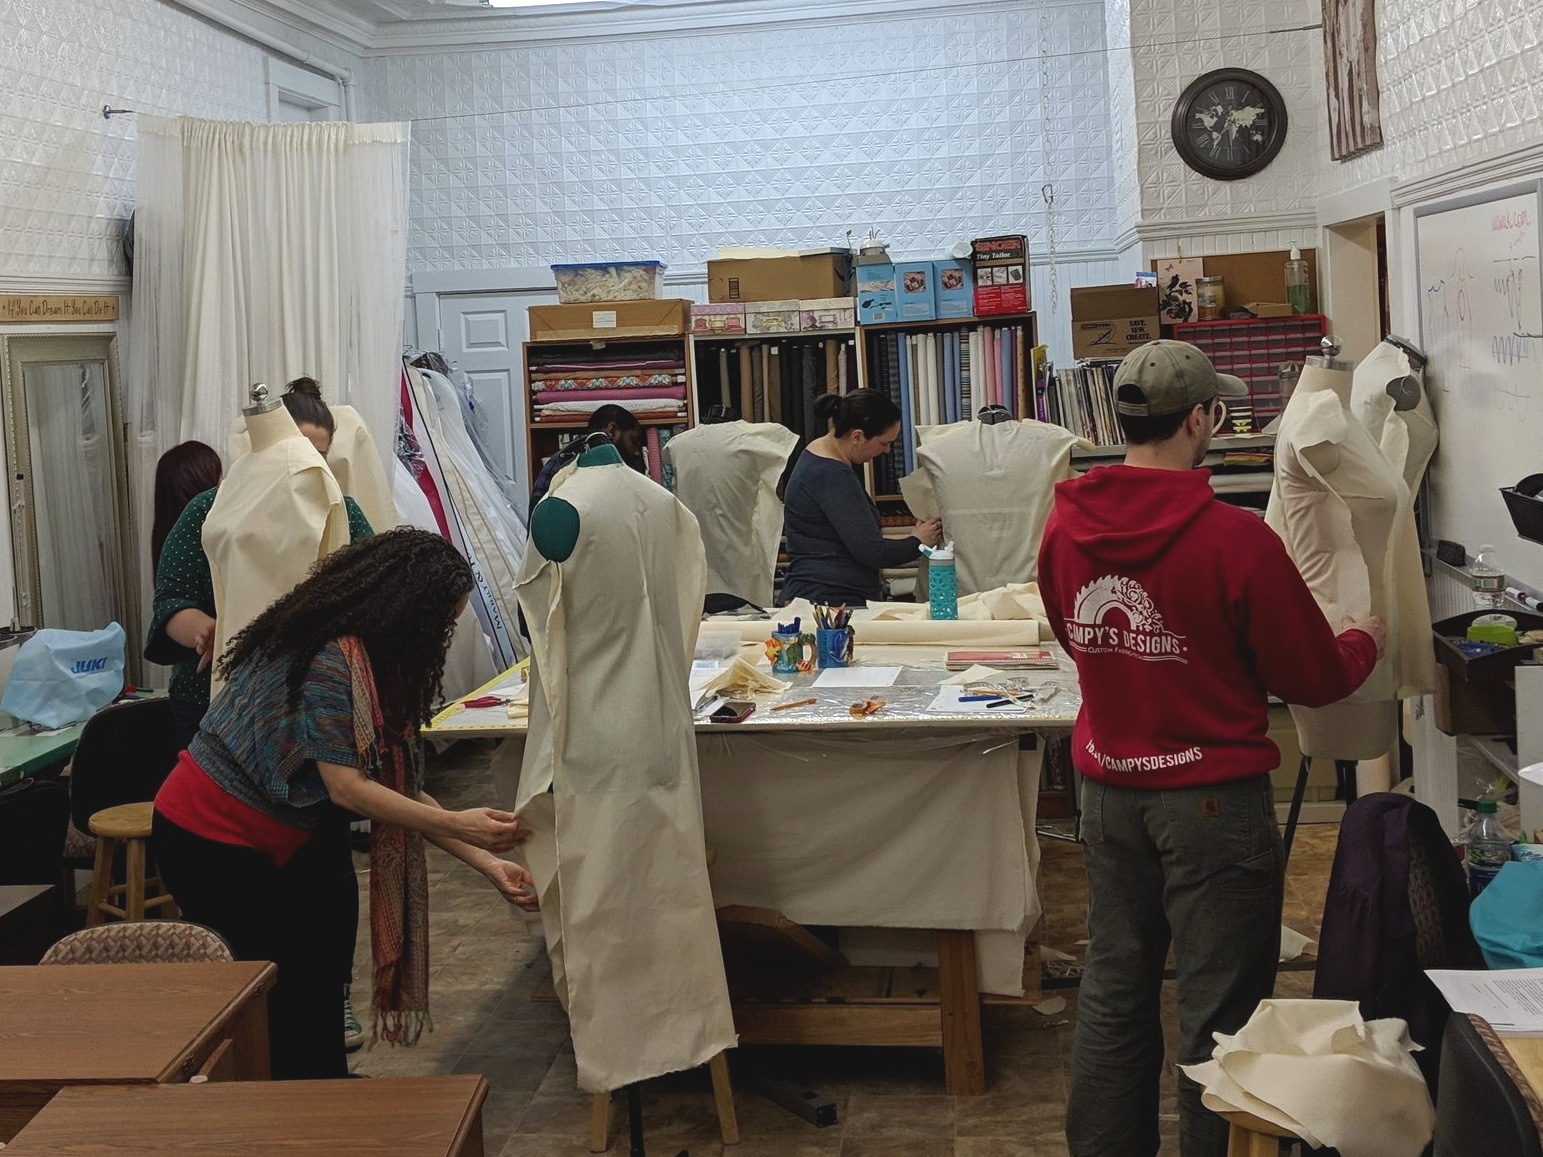 Intermediate course students are learning basics of draping